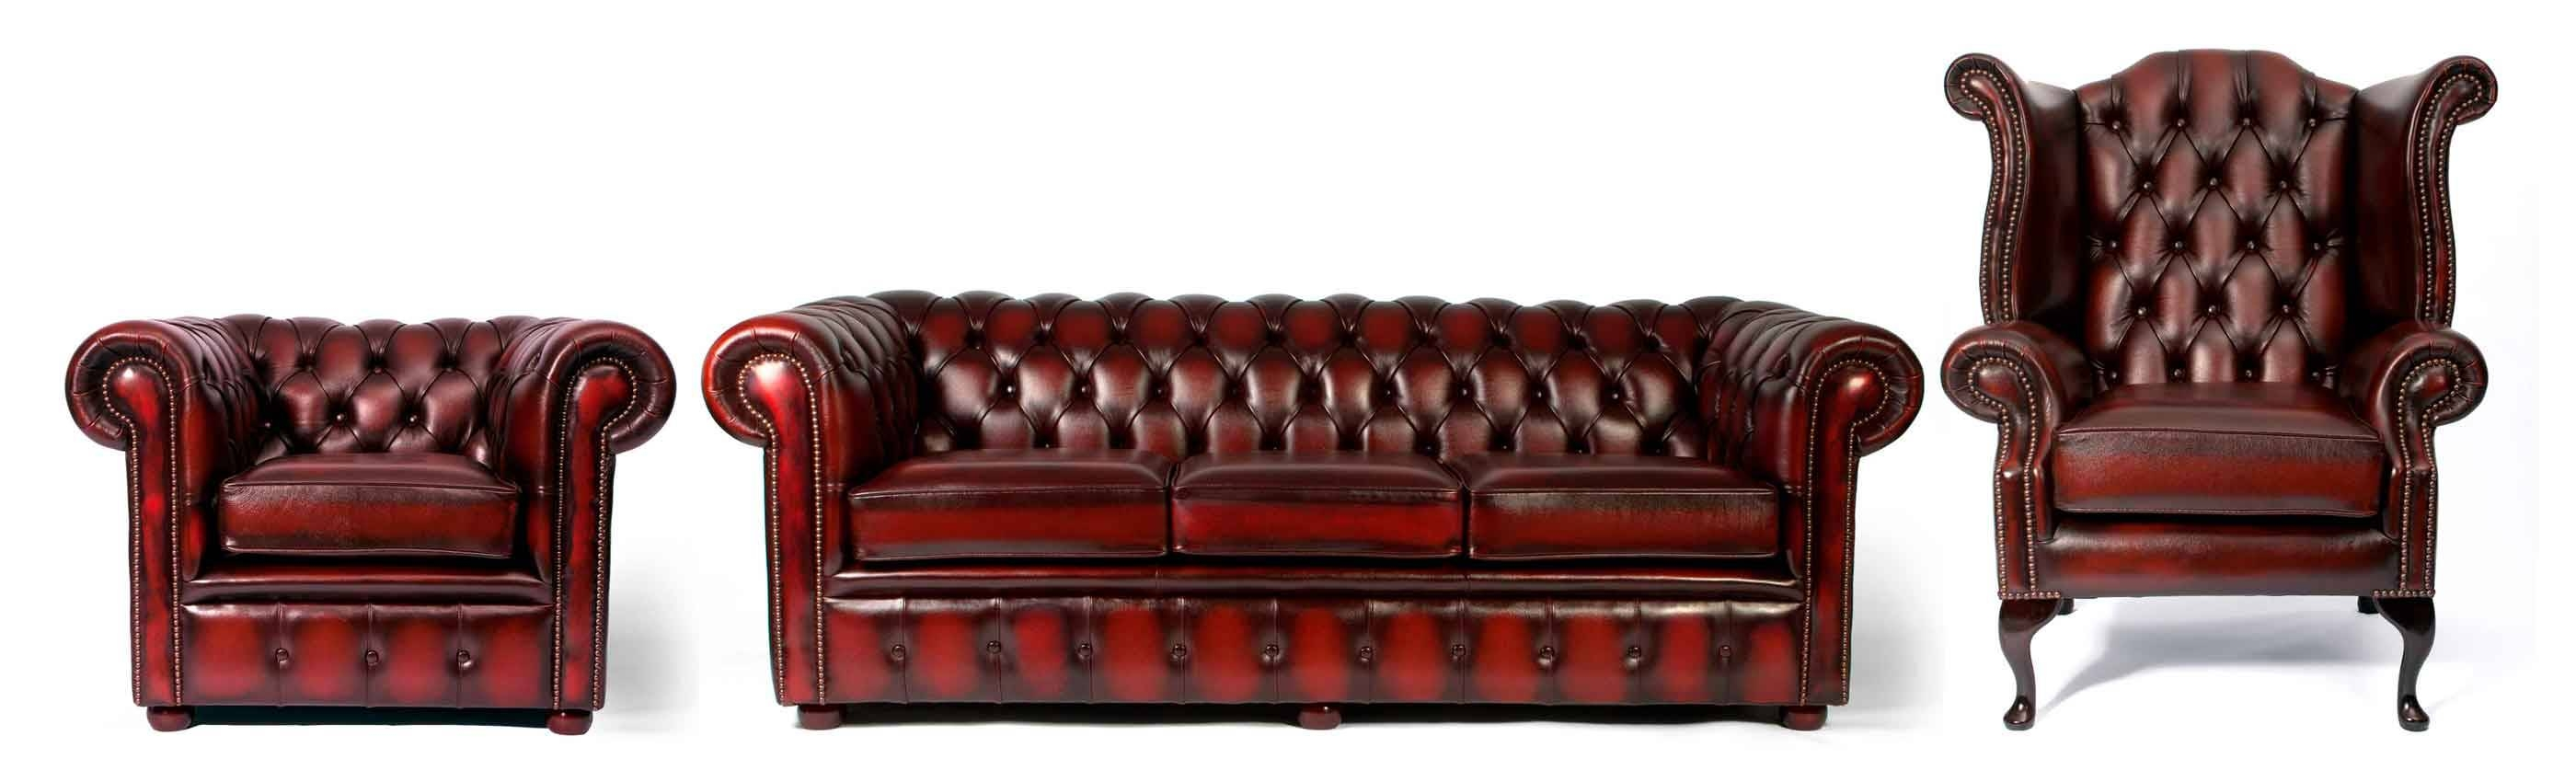 Furniture: Enchanting Chesterfield Couch For Living Room Furniture inside Red Chesterfield Sofas (Image 7 of 15)